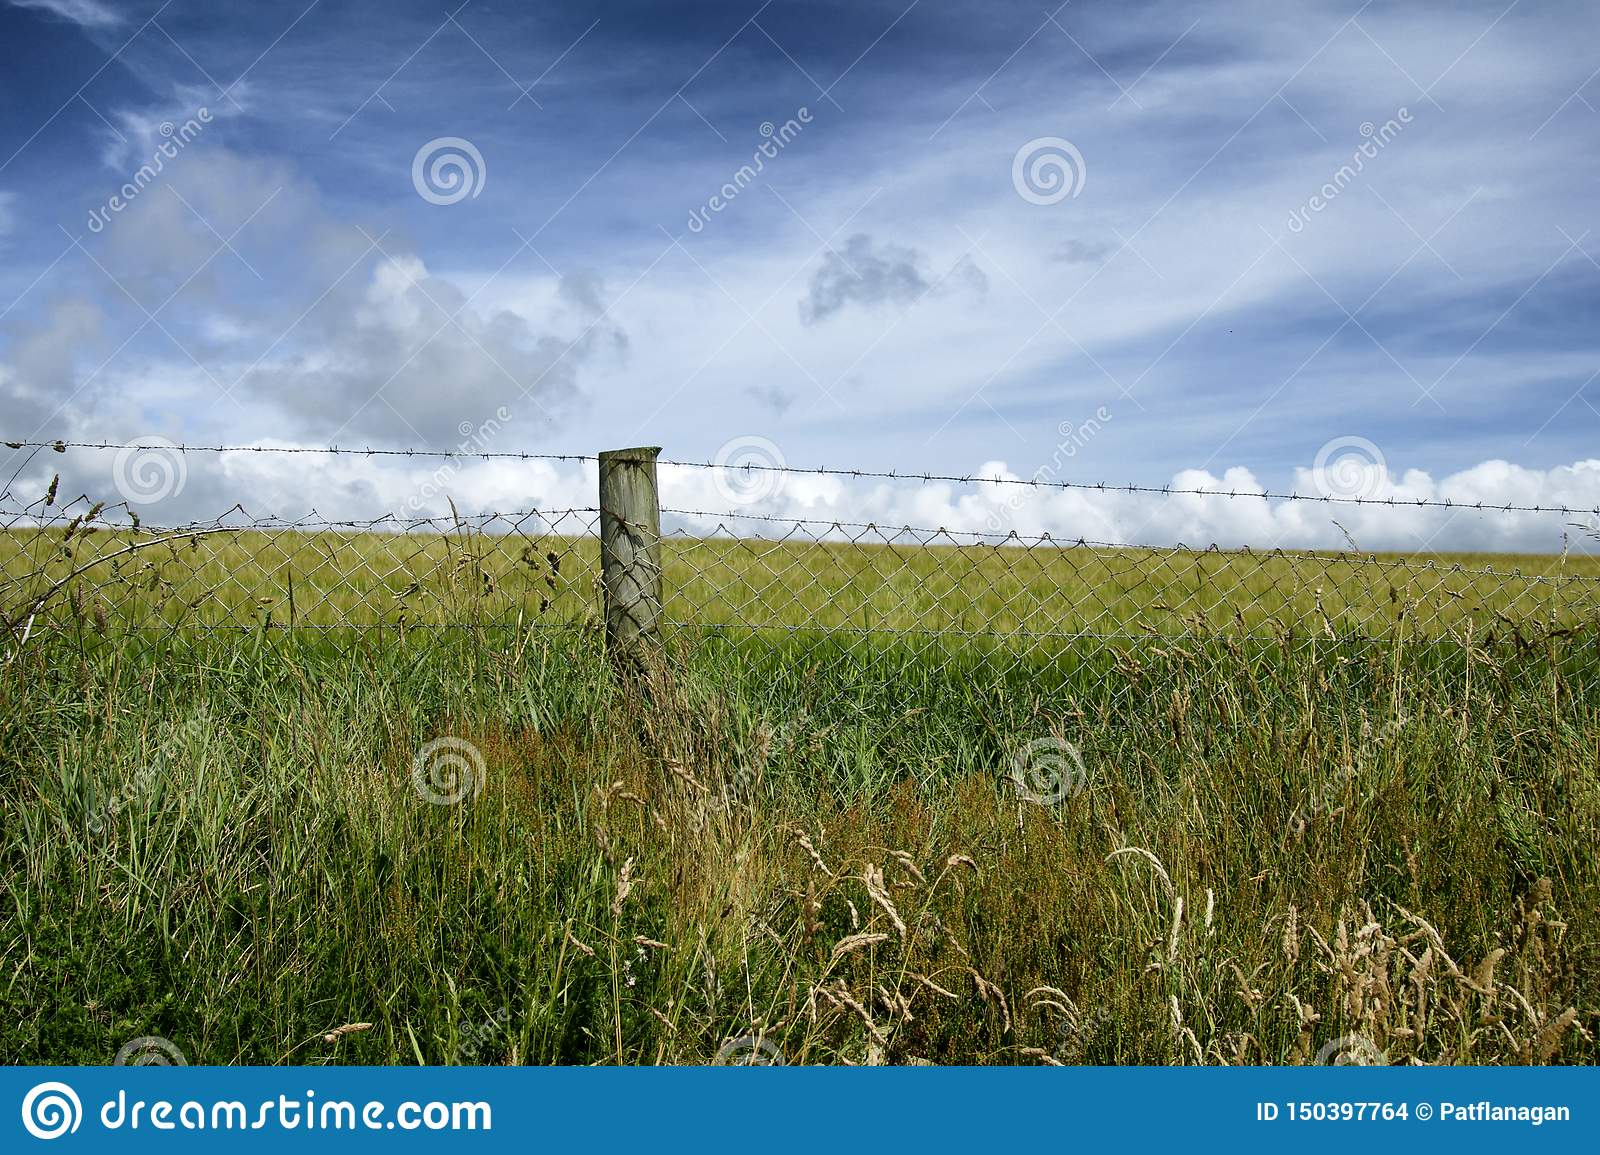 A wire fence in front of a meadow